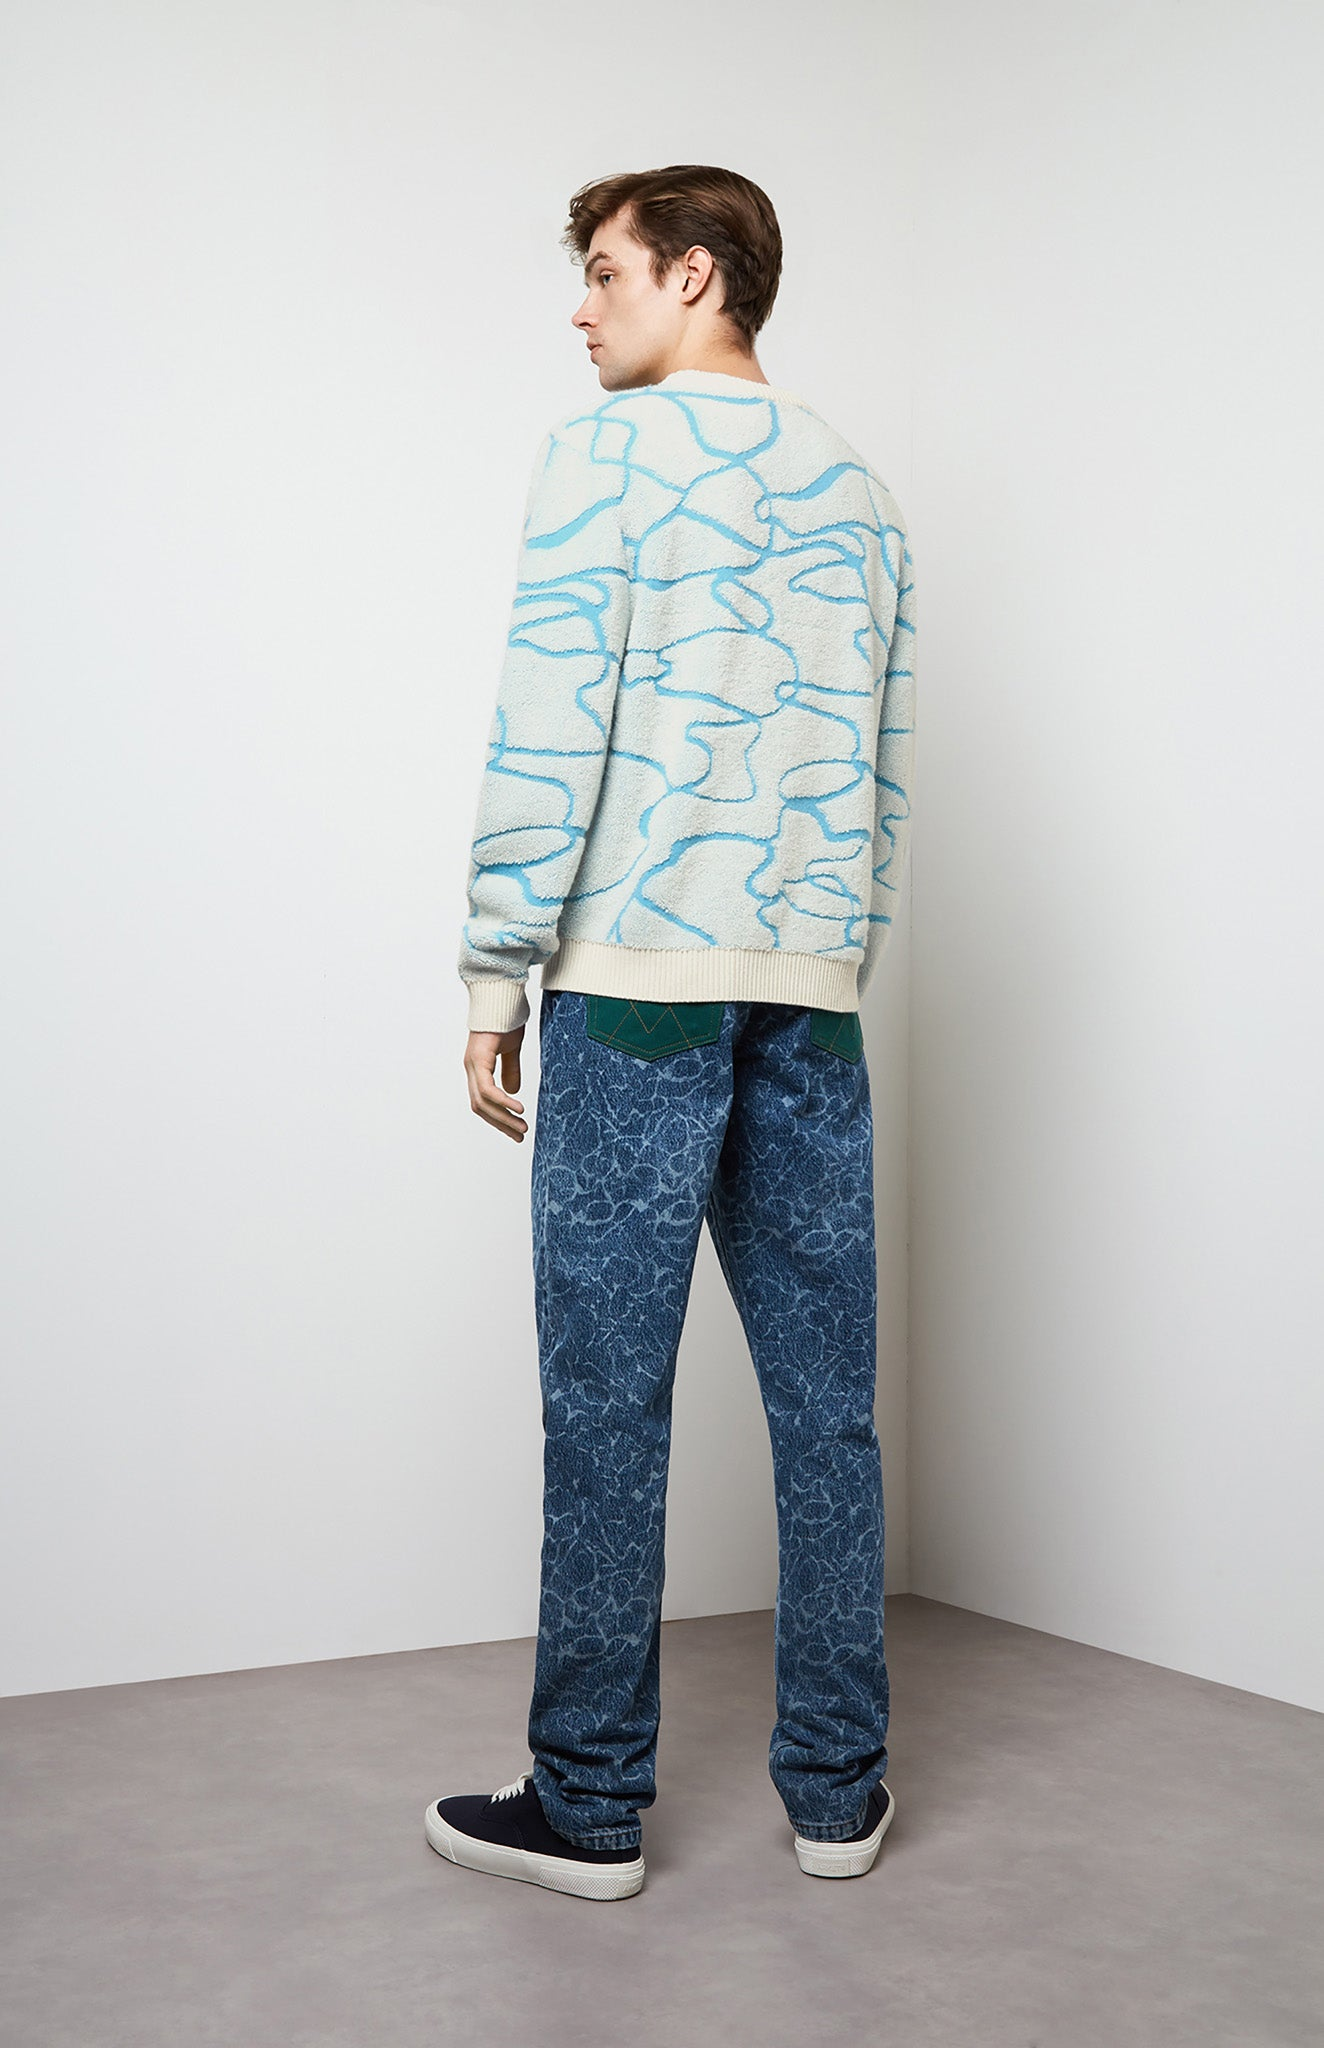 Graphic Cashmere Reflections Jumper In White/Blue